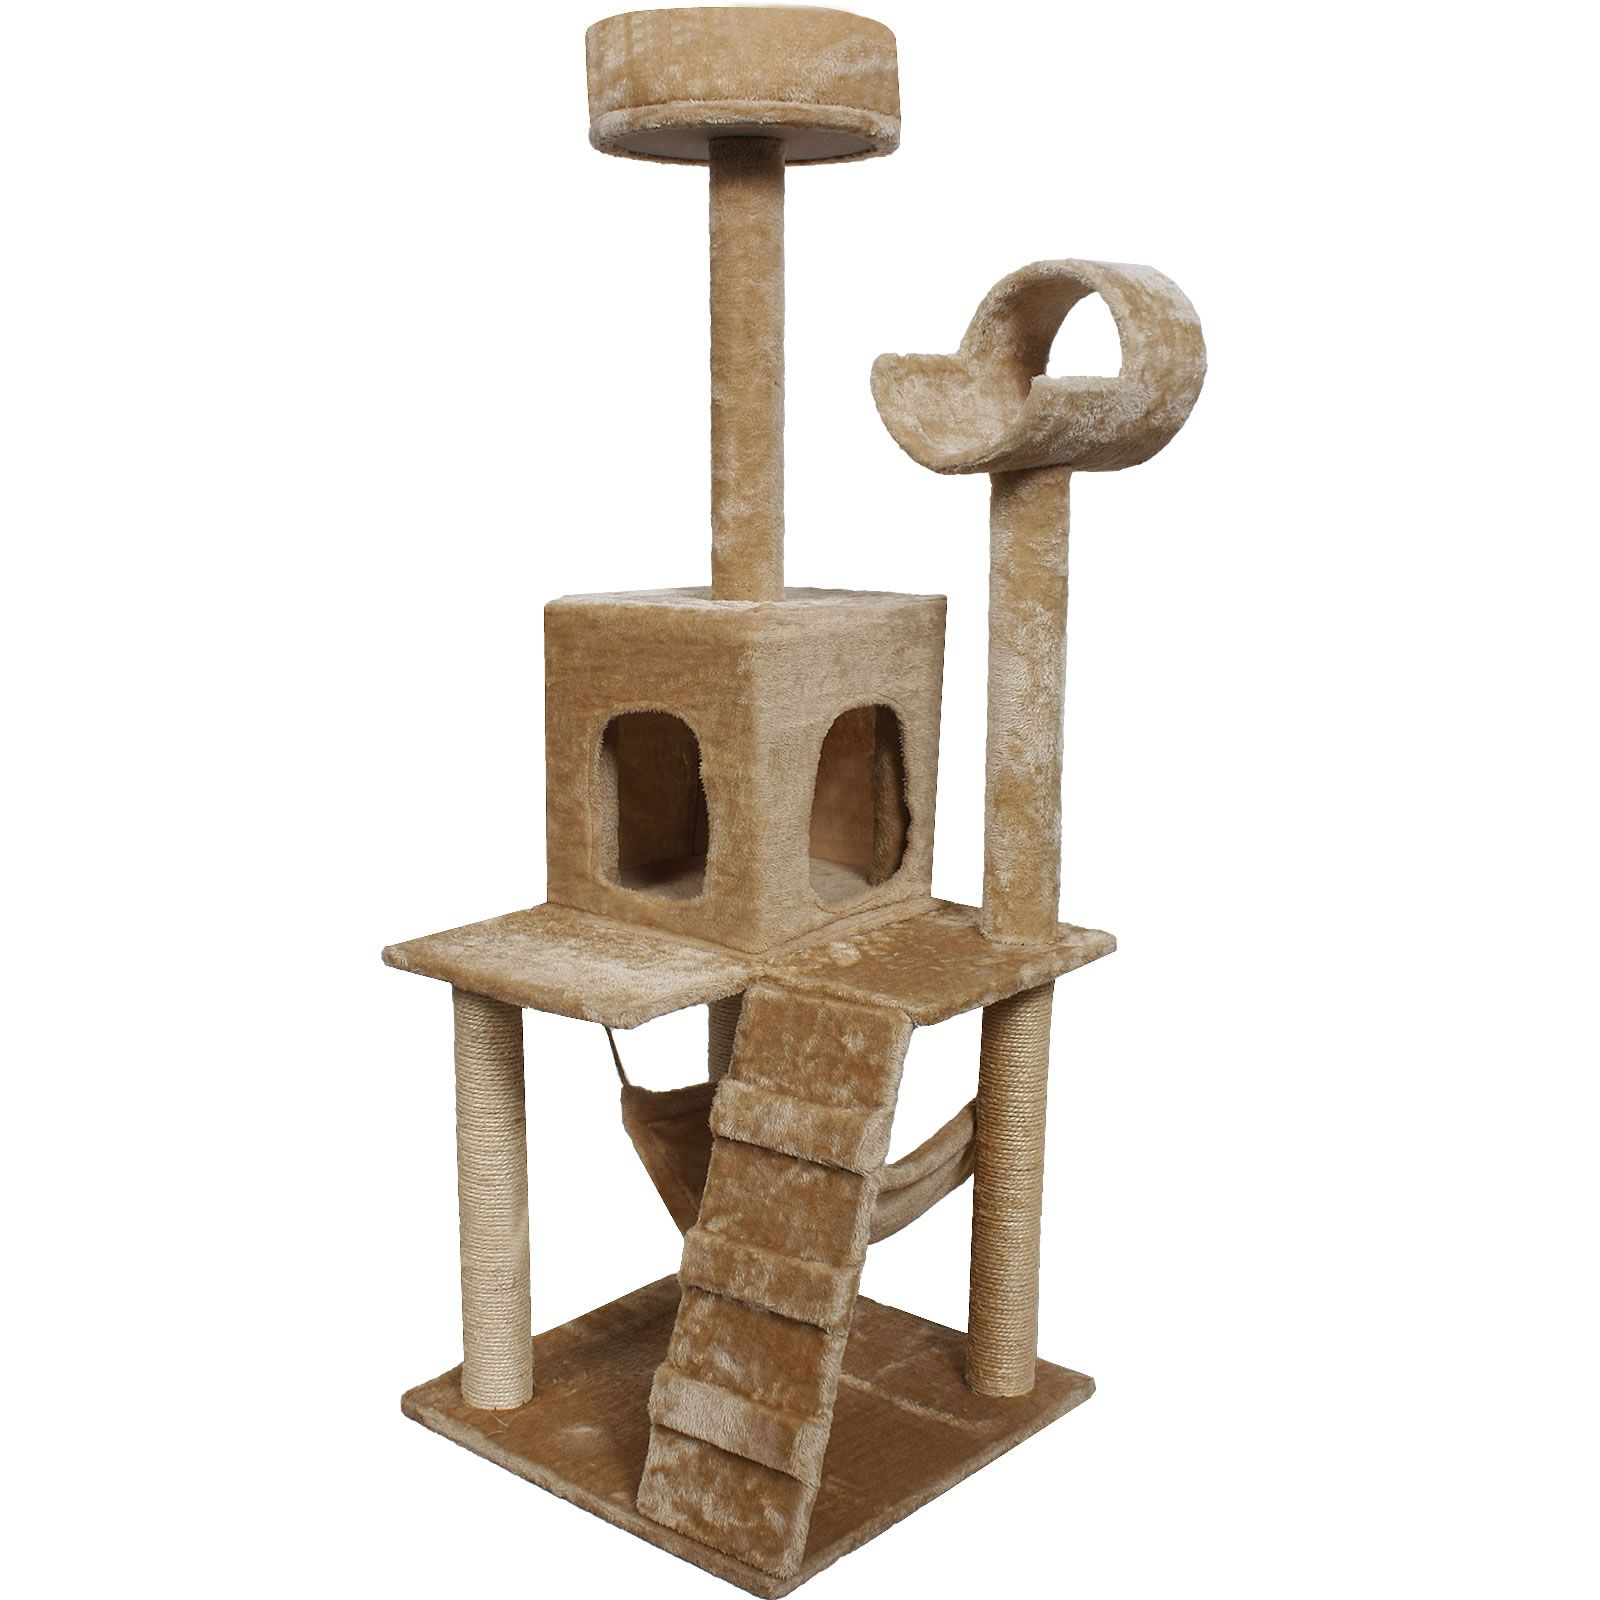 details about 52   cat kitty tree tower condo furniture scratch post       rooms transformed into overhead cat playgrounds with walkways and      rh   pinterest